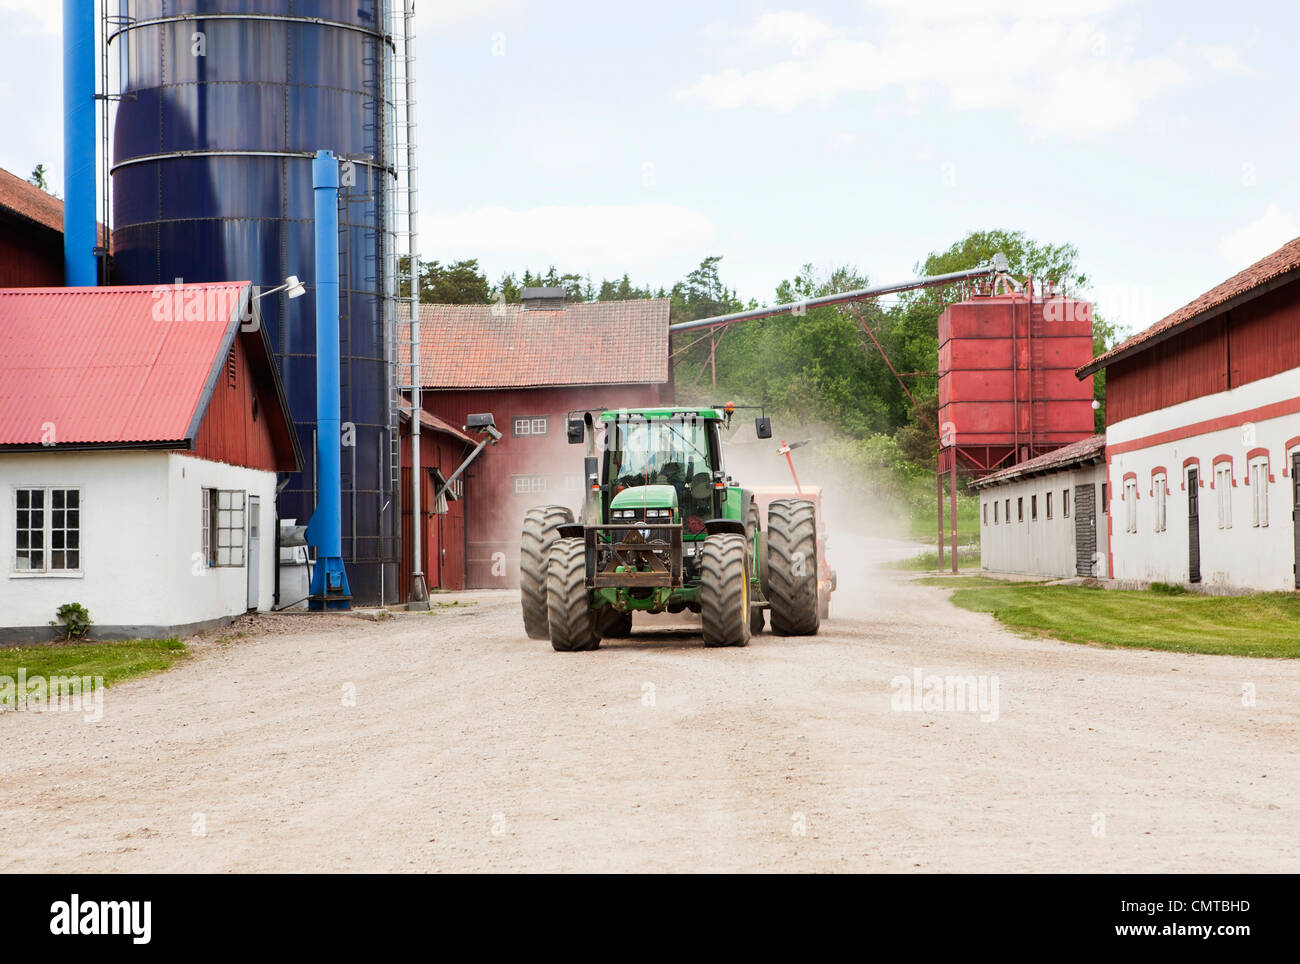 Tractor on the move on dirt road - Stock Image